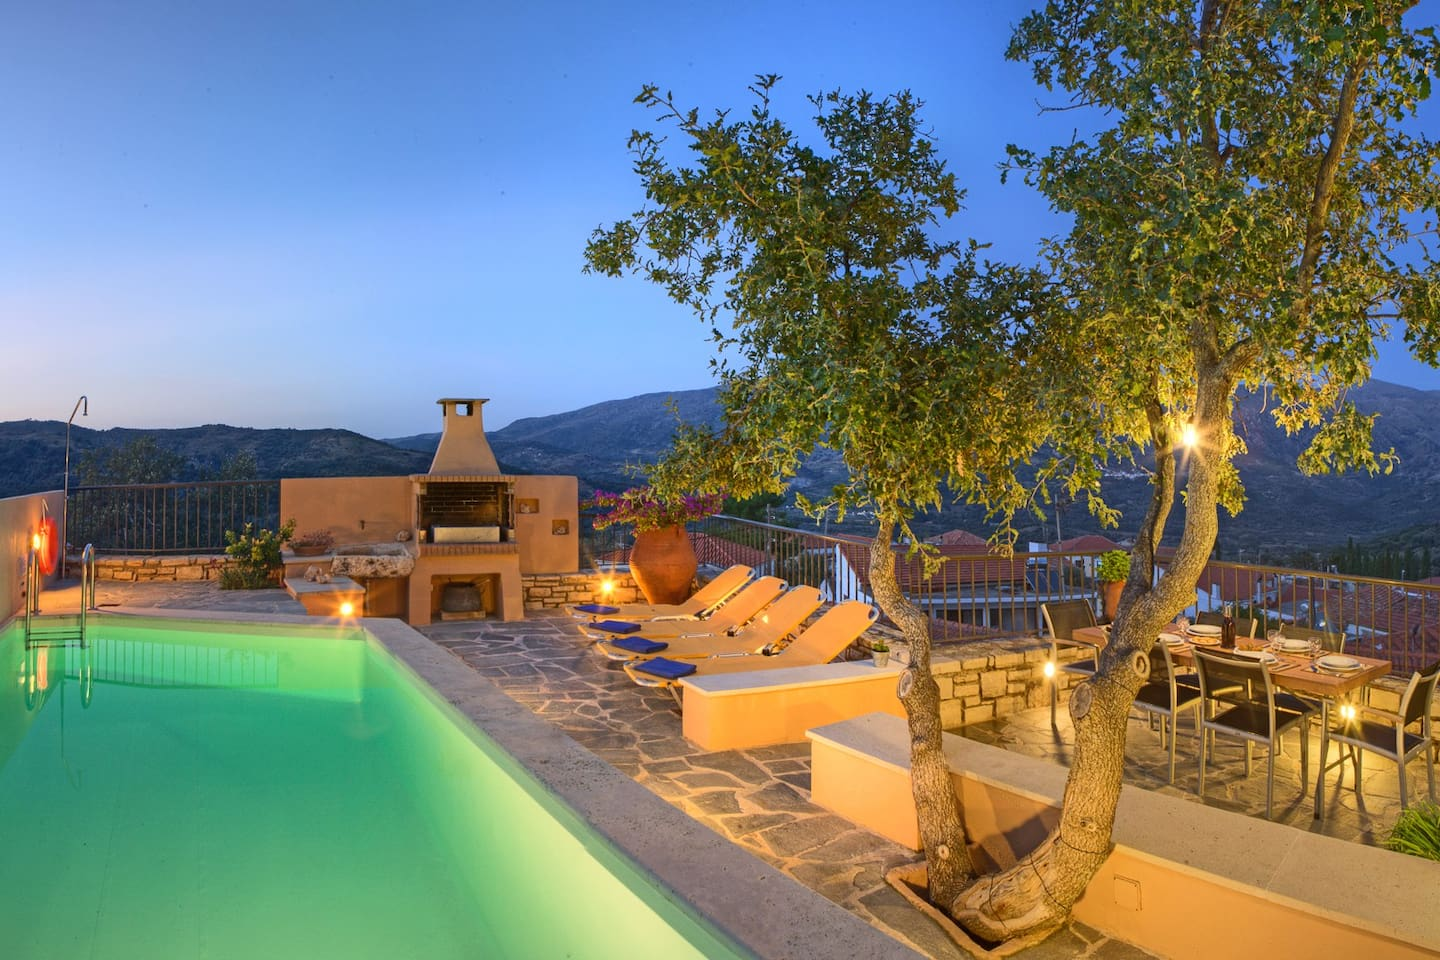 Pure relaxation in the calm of Amari Valley